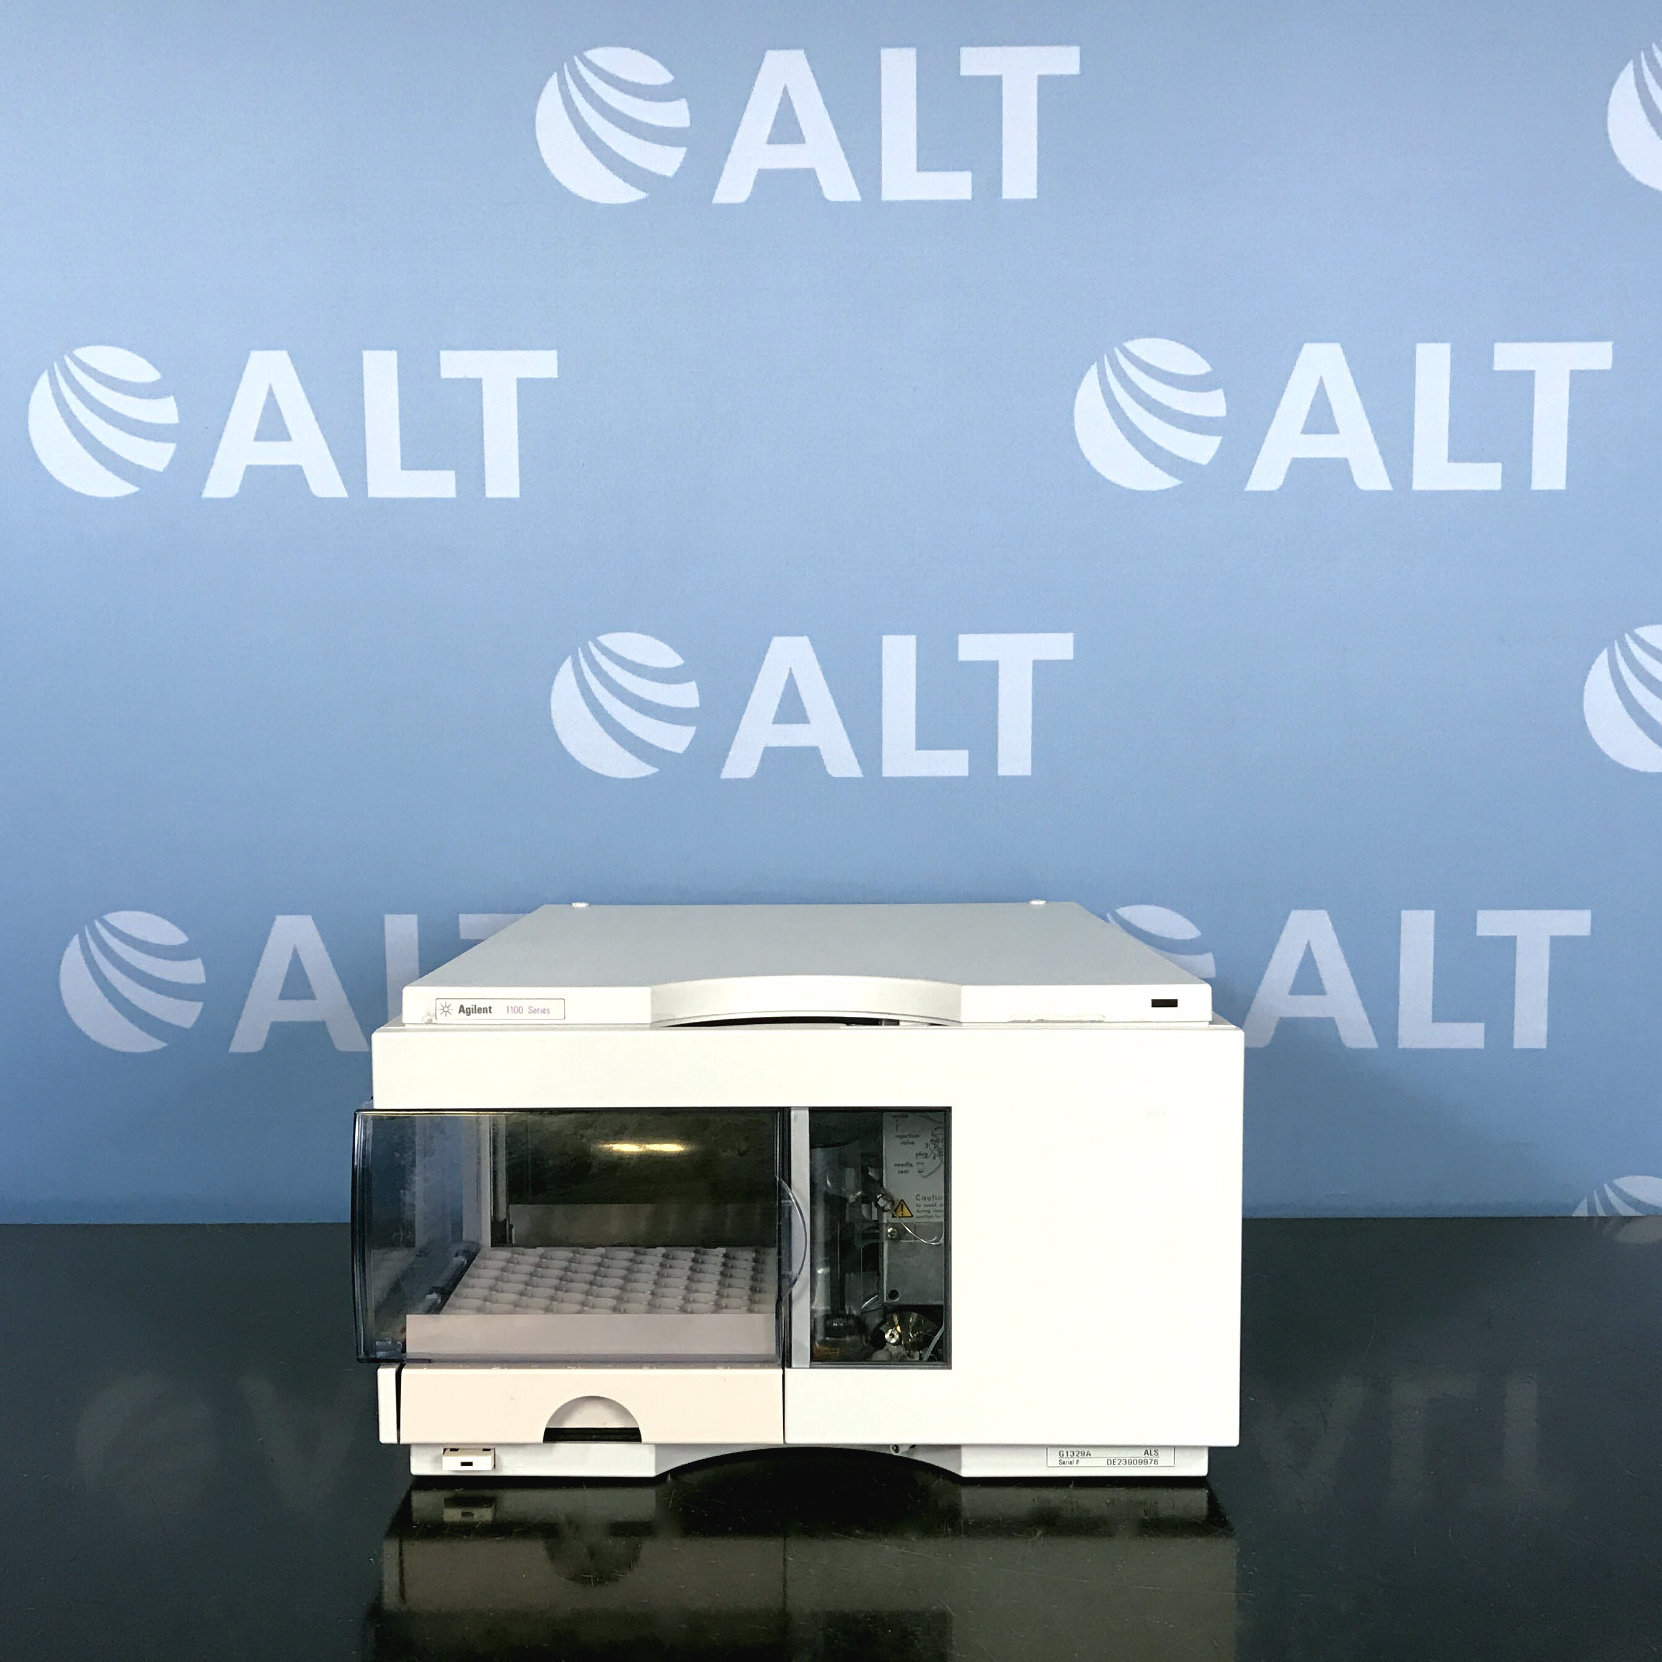 Agilent 1100 Series G1329A Autosampler Image